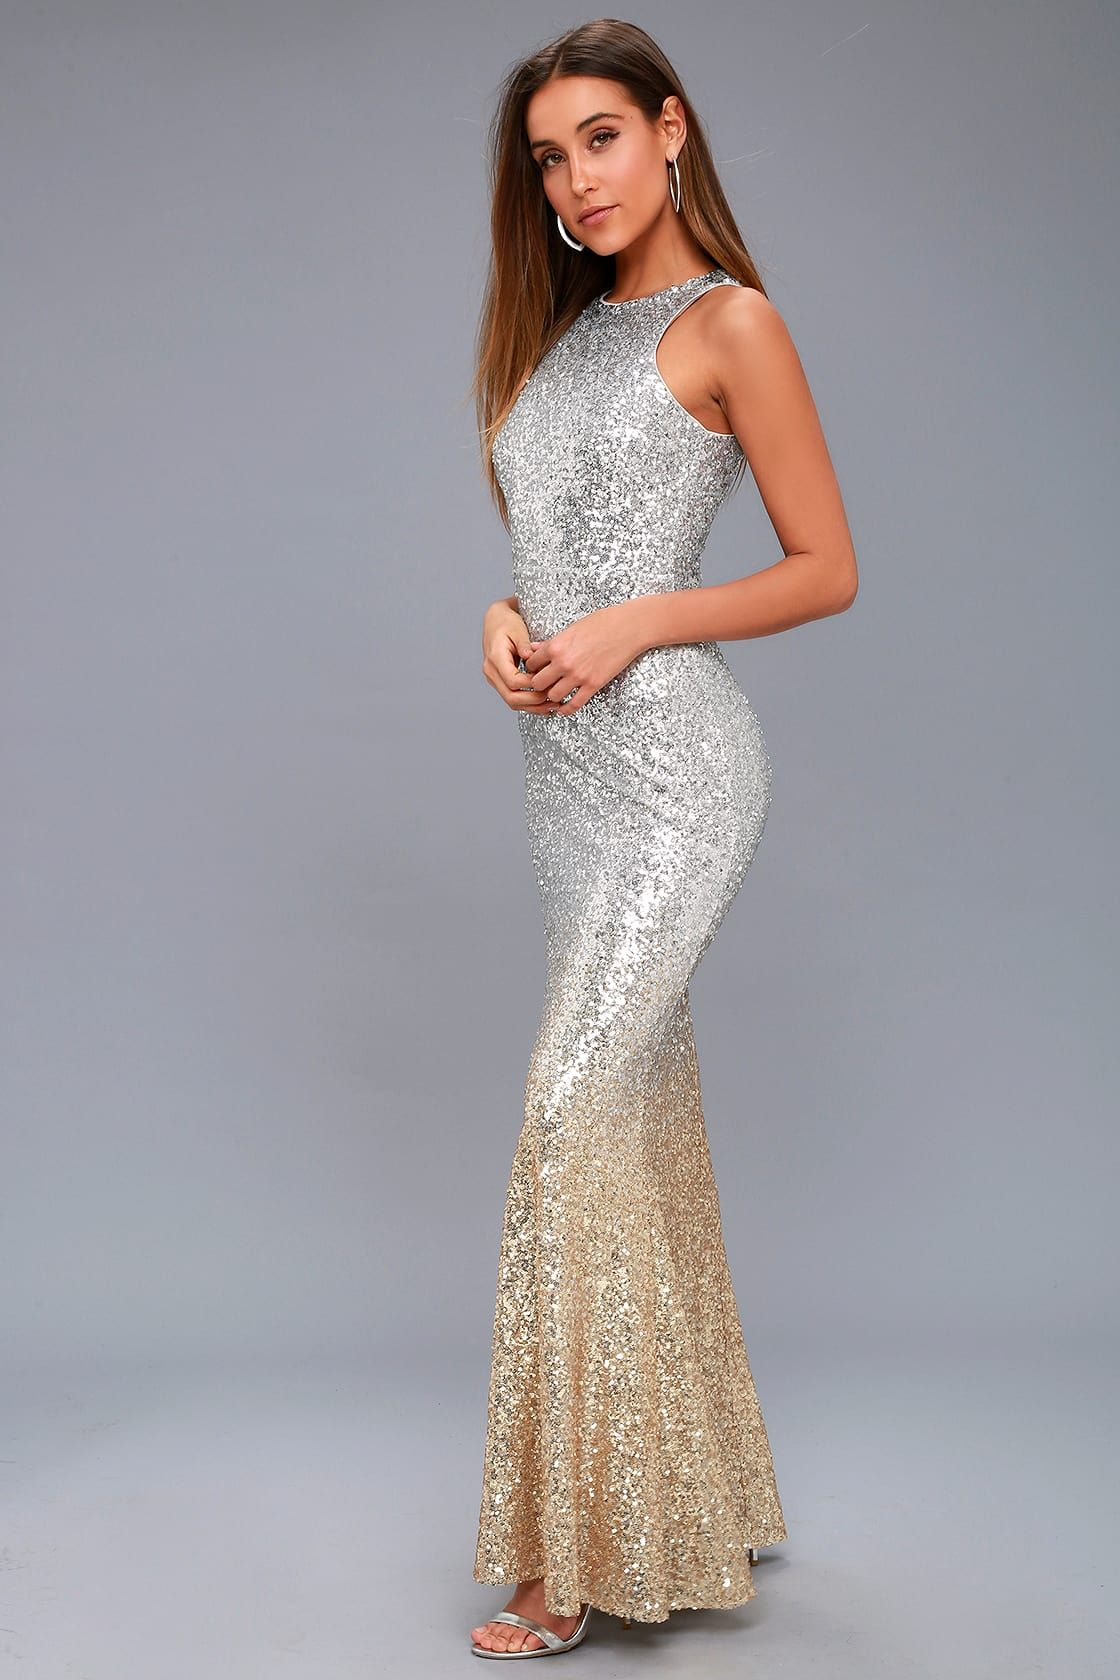 67a61ac27c2 Infinite Dreams Gold and Silver Ombre Sequin Maxi Dress